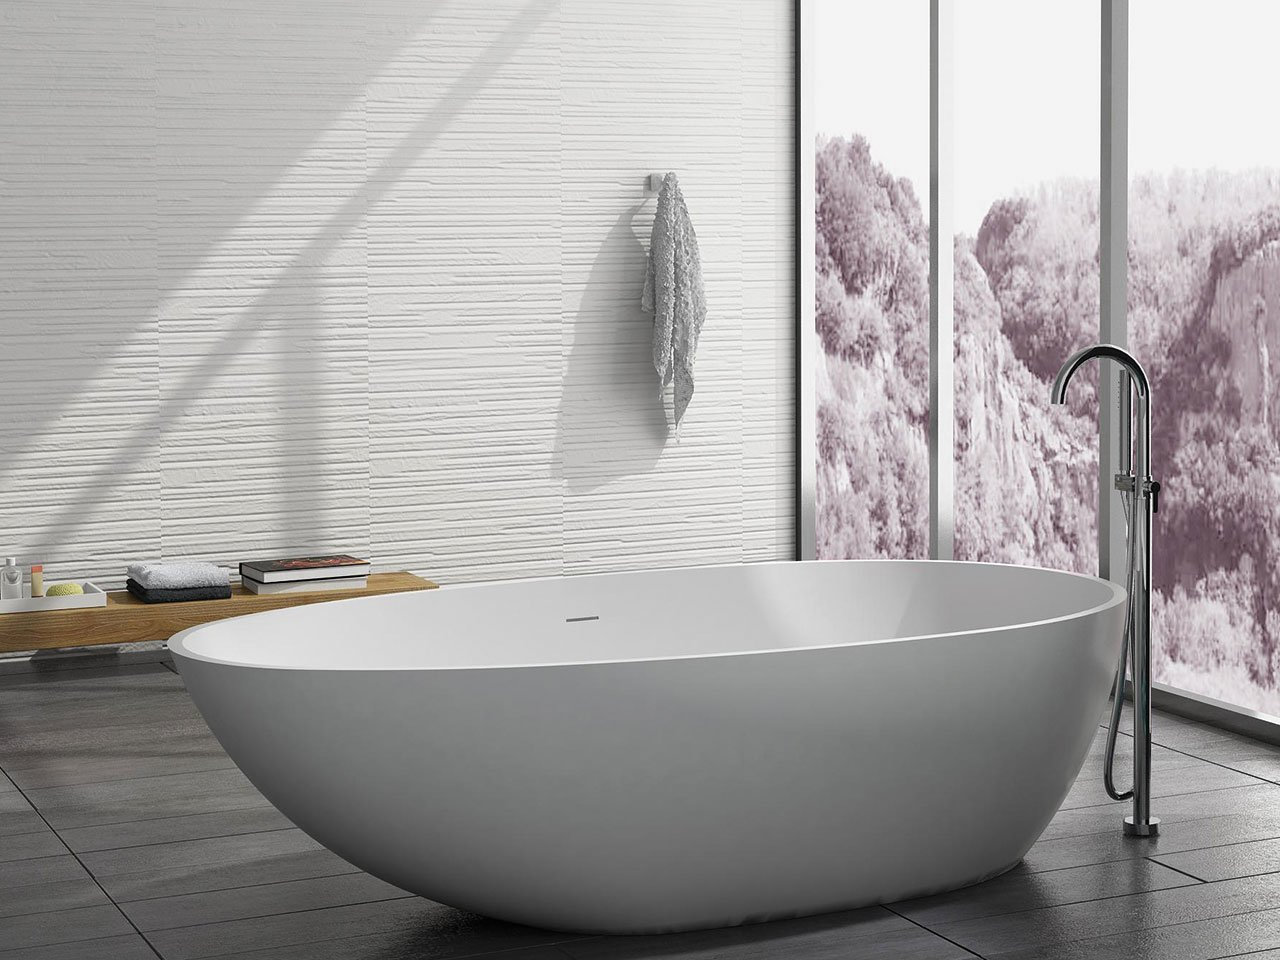 Vasca Ovale Dimensioni Vasca Oval Solid Surface Cm 178x98xh51 Iperceramica